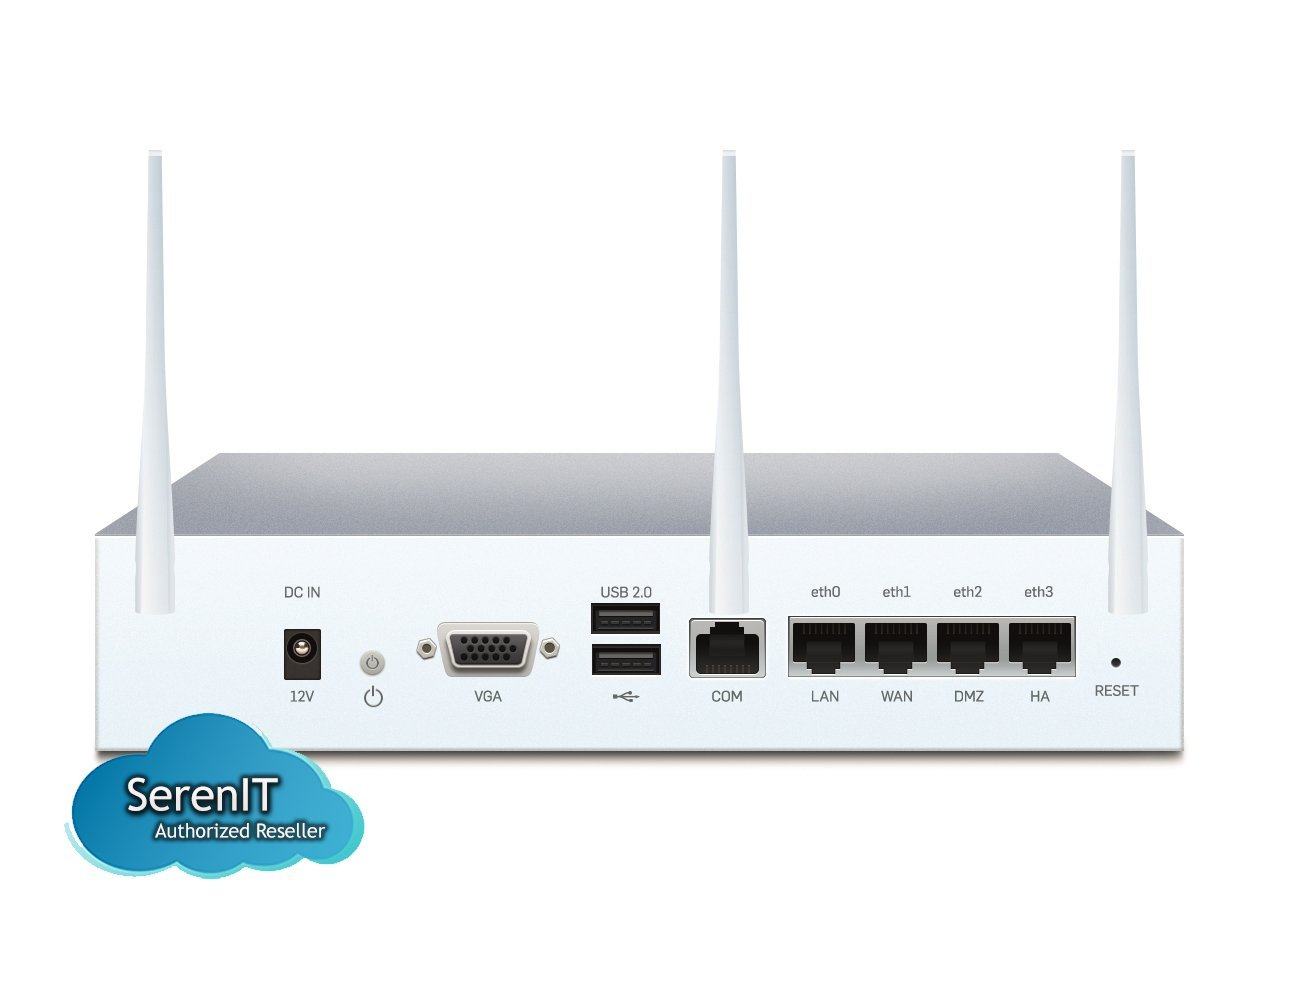 Sophos | SW1ATCHUS | SG 105w Security Appliance WiFi - US power cord by Sophos (Image #2)